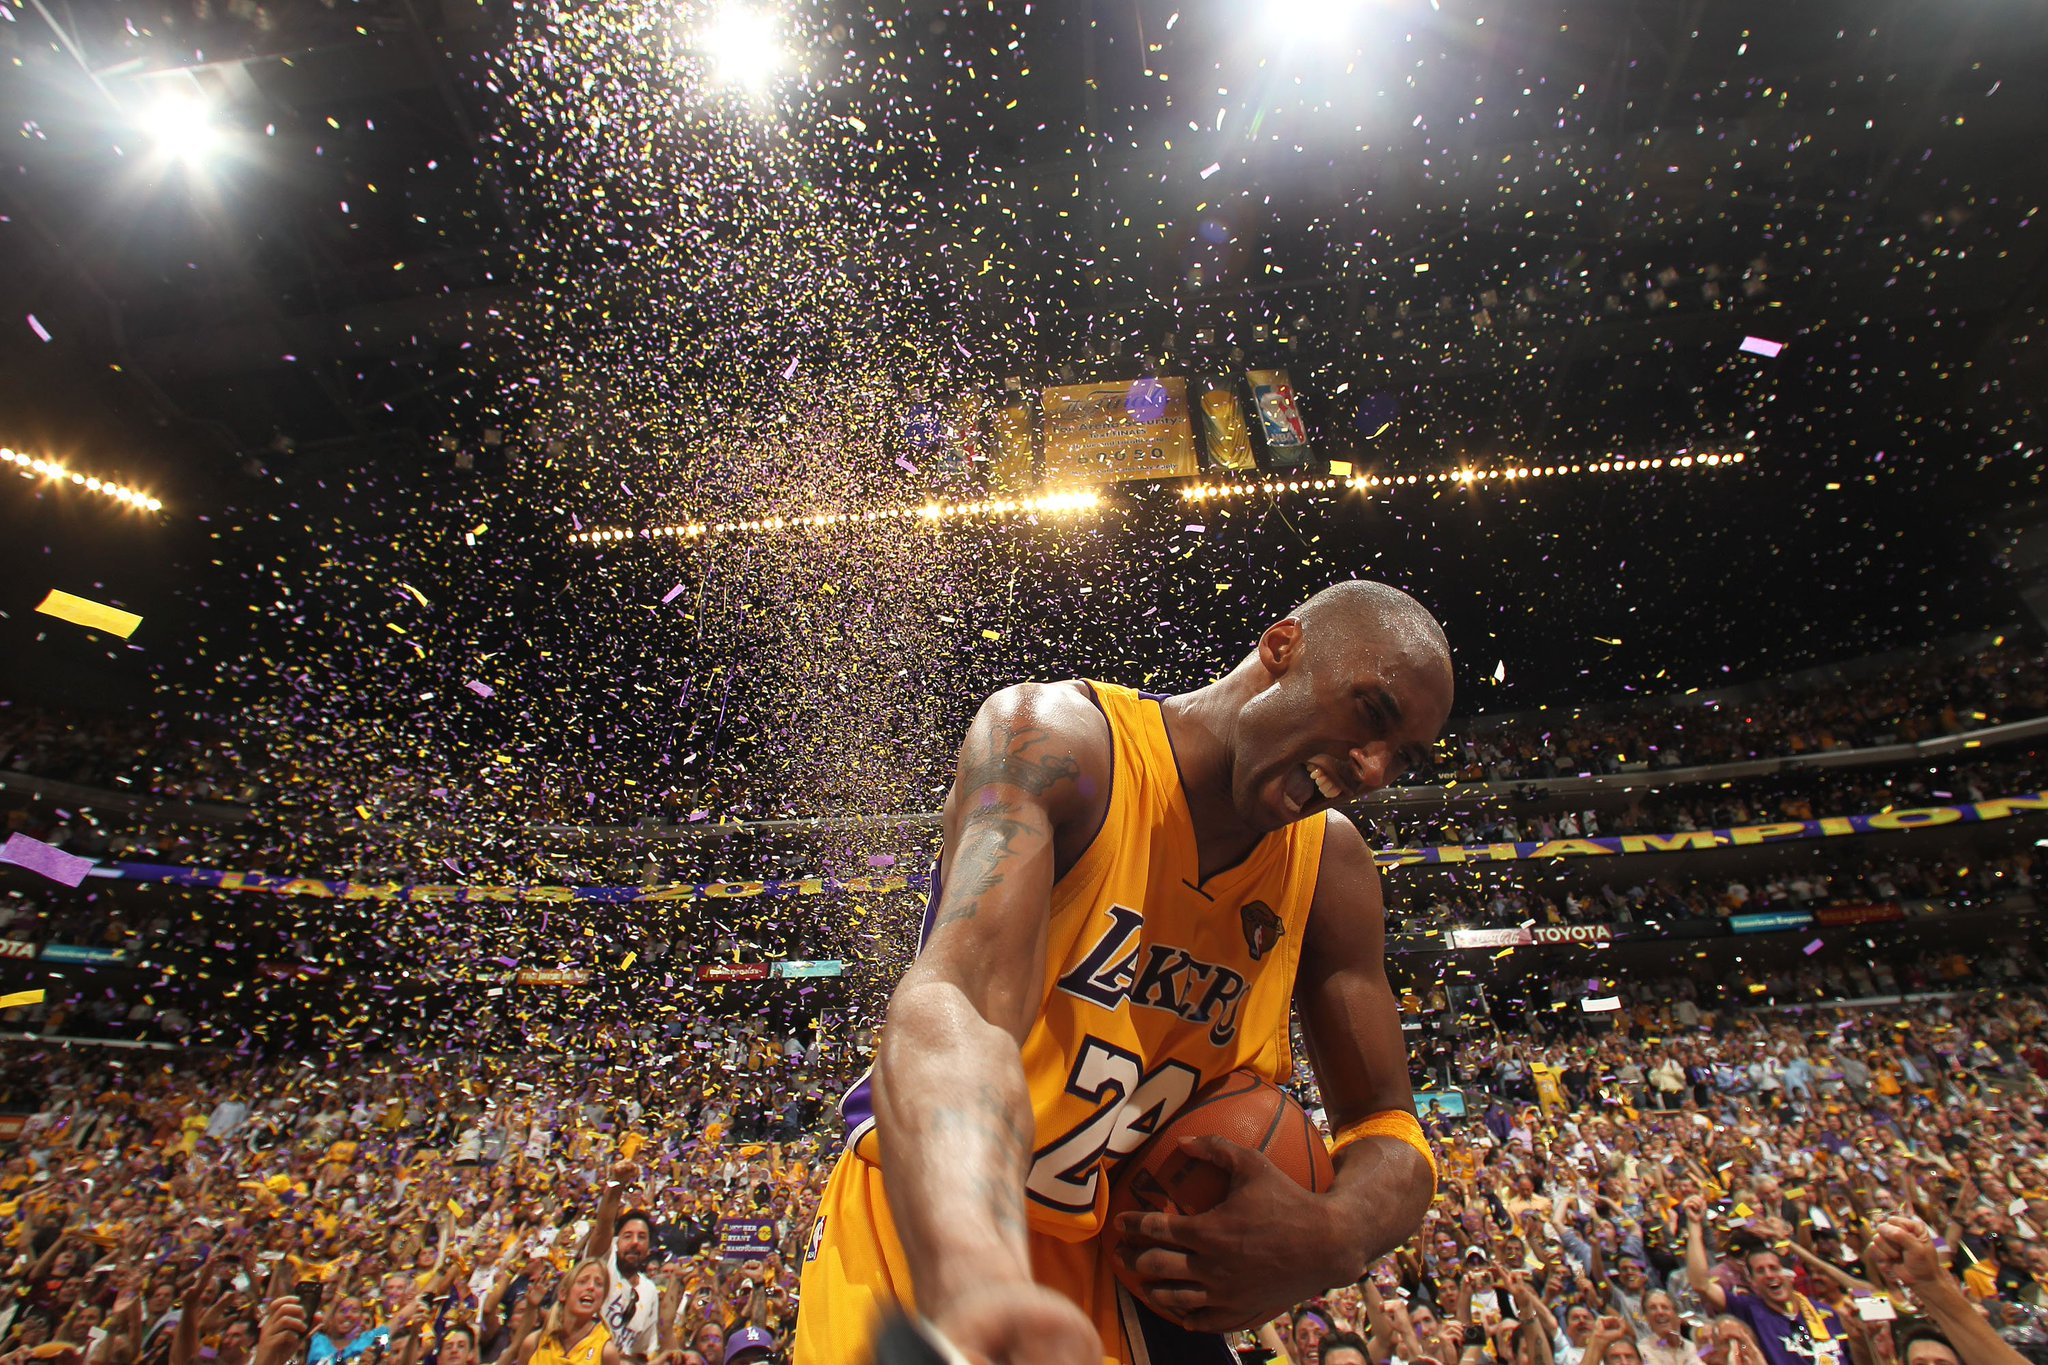 Happy birthday Kobe. https://t.co/D60qf5eu4z